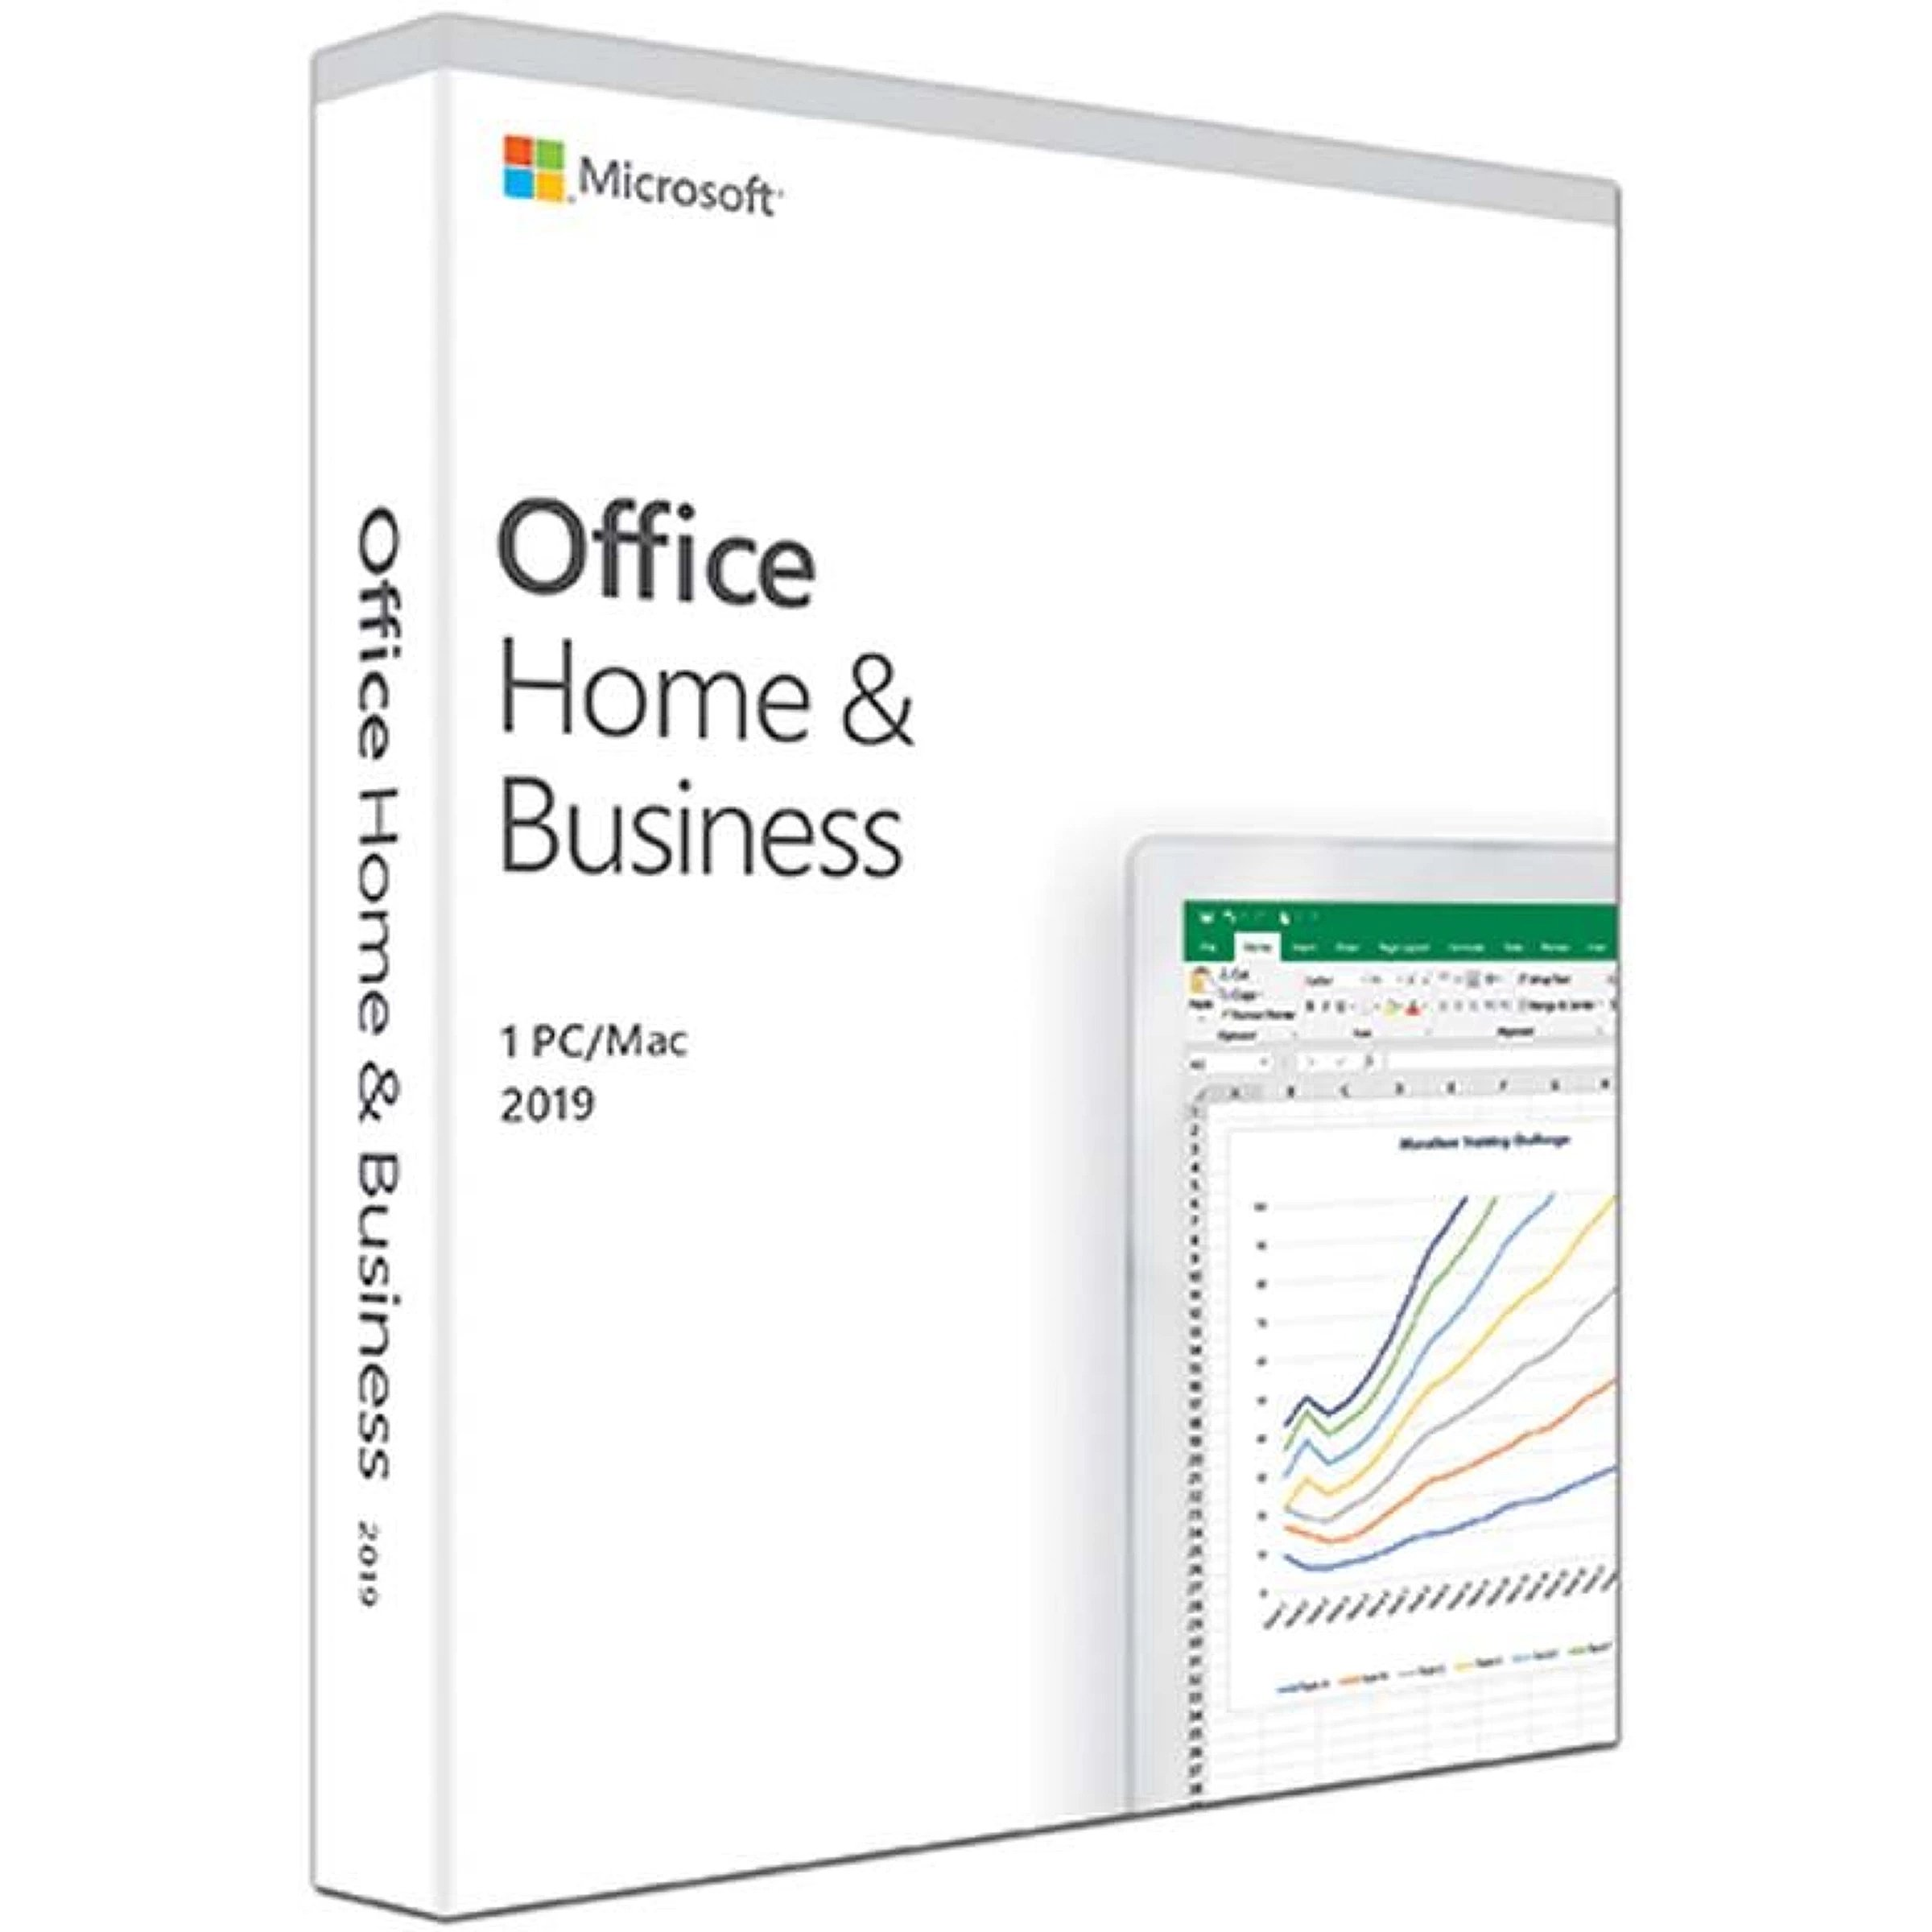 Microsoft Office Home & Business 2019, Russian